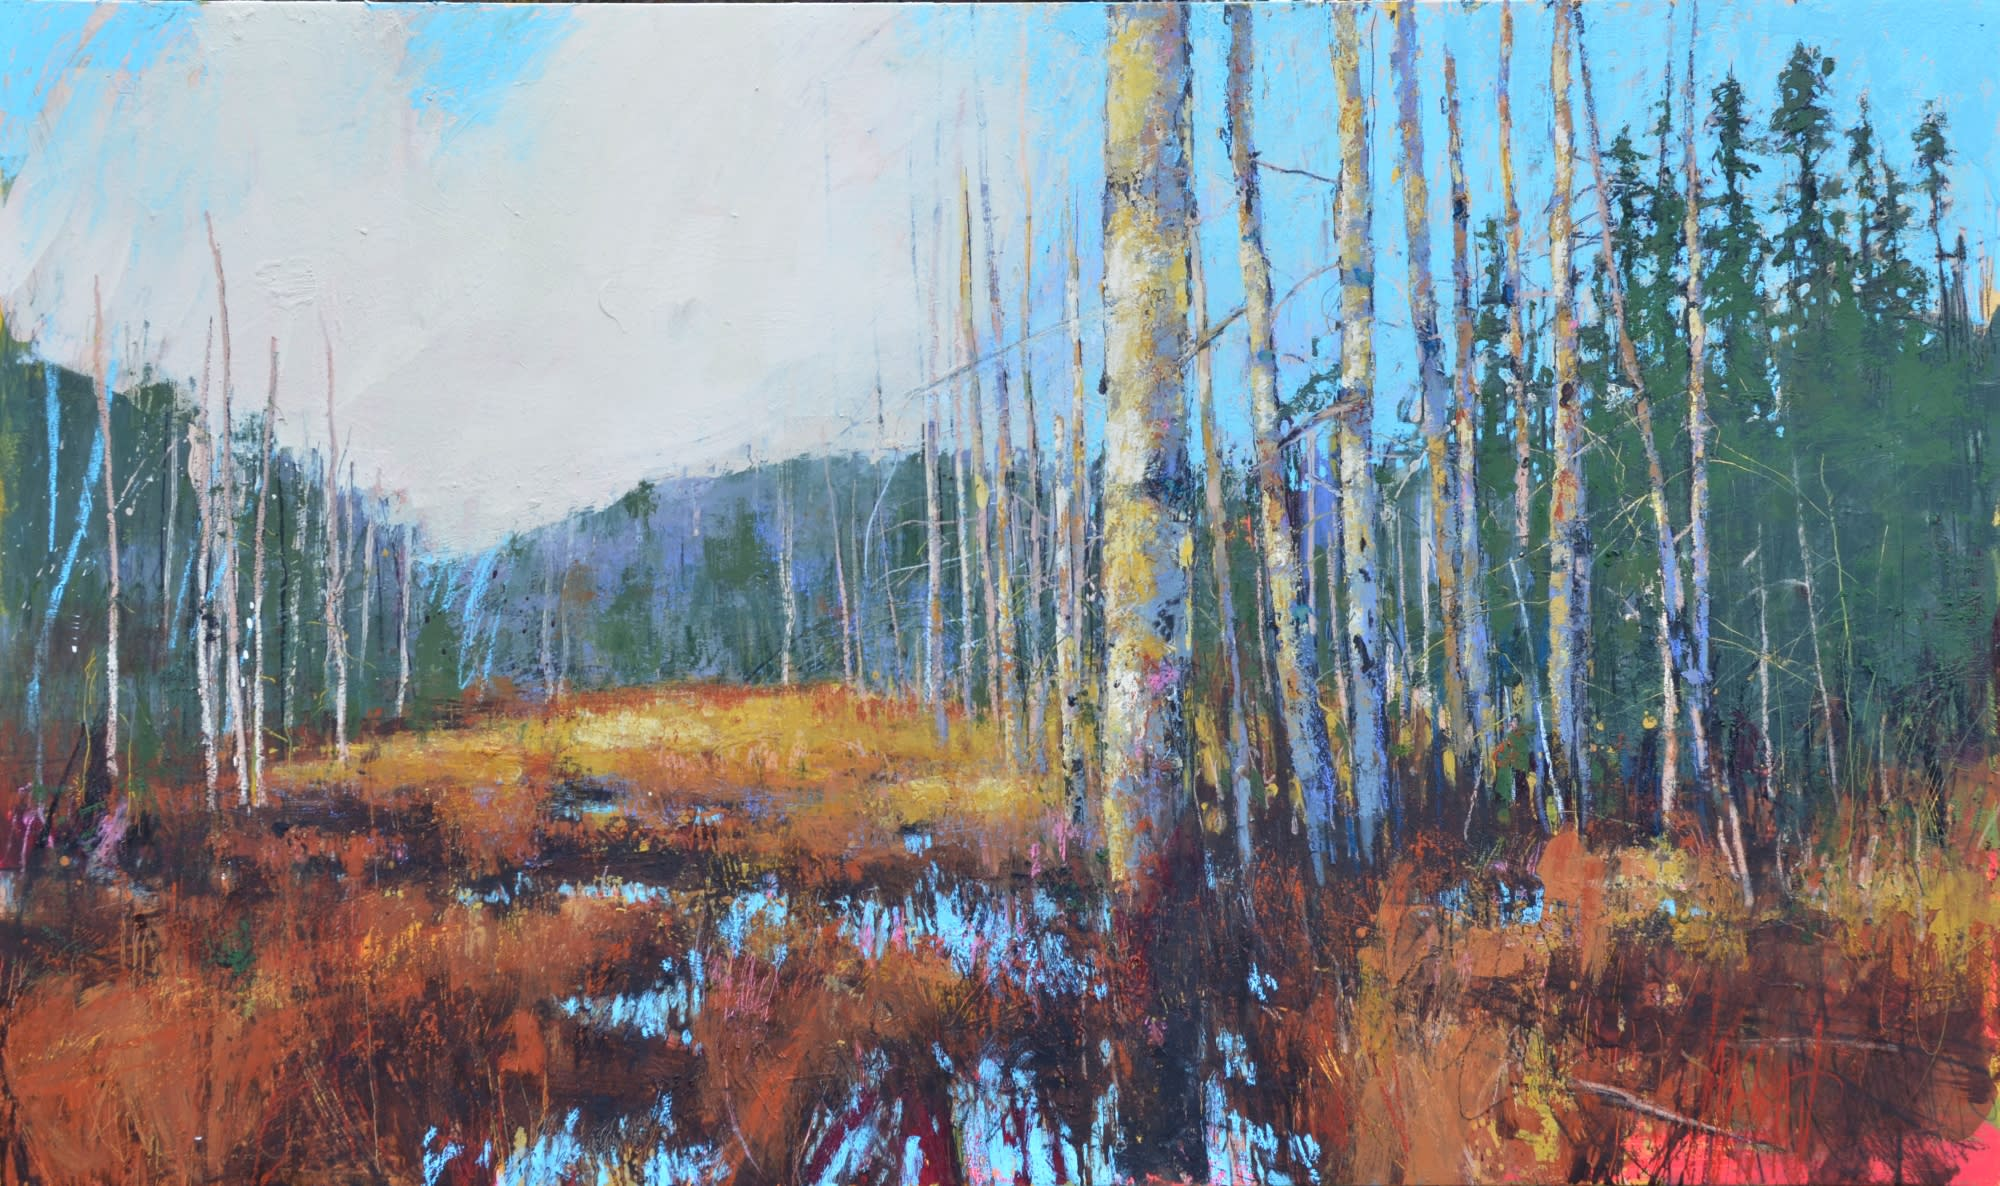 'Fertile Silence' by Laura Culic at Gallery 133